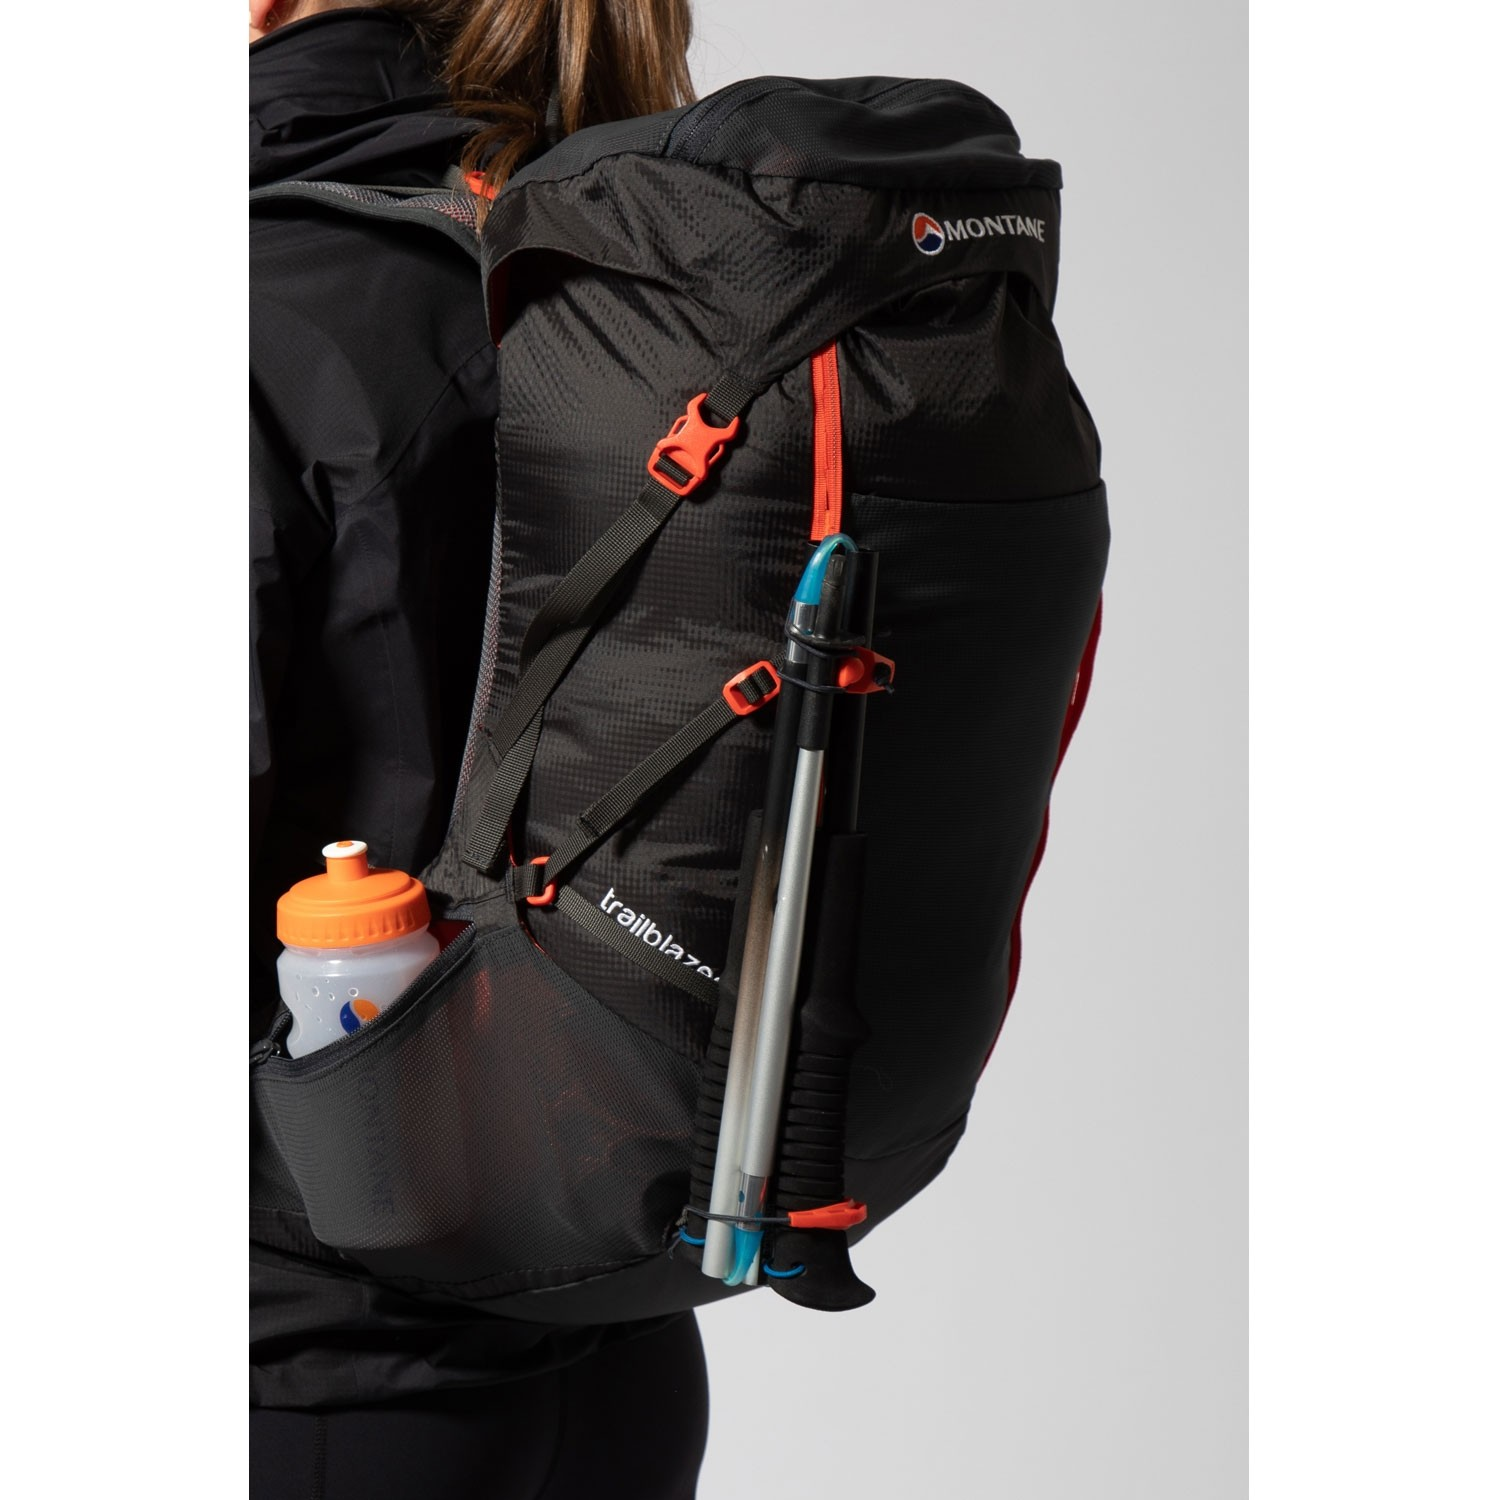 Montane Trailblazer 44 Rucksack - Charcoal/Firefly Orange